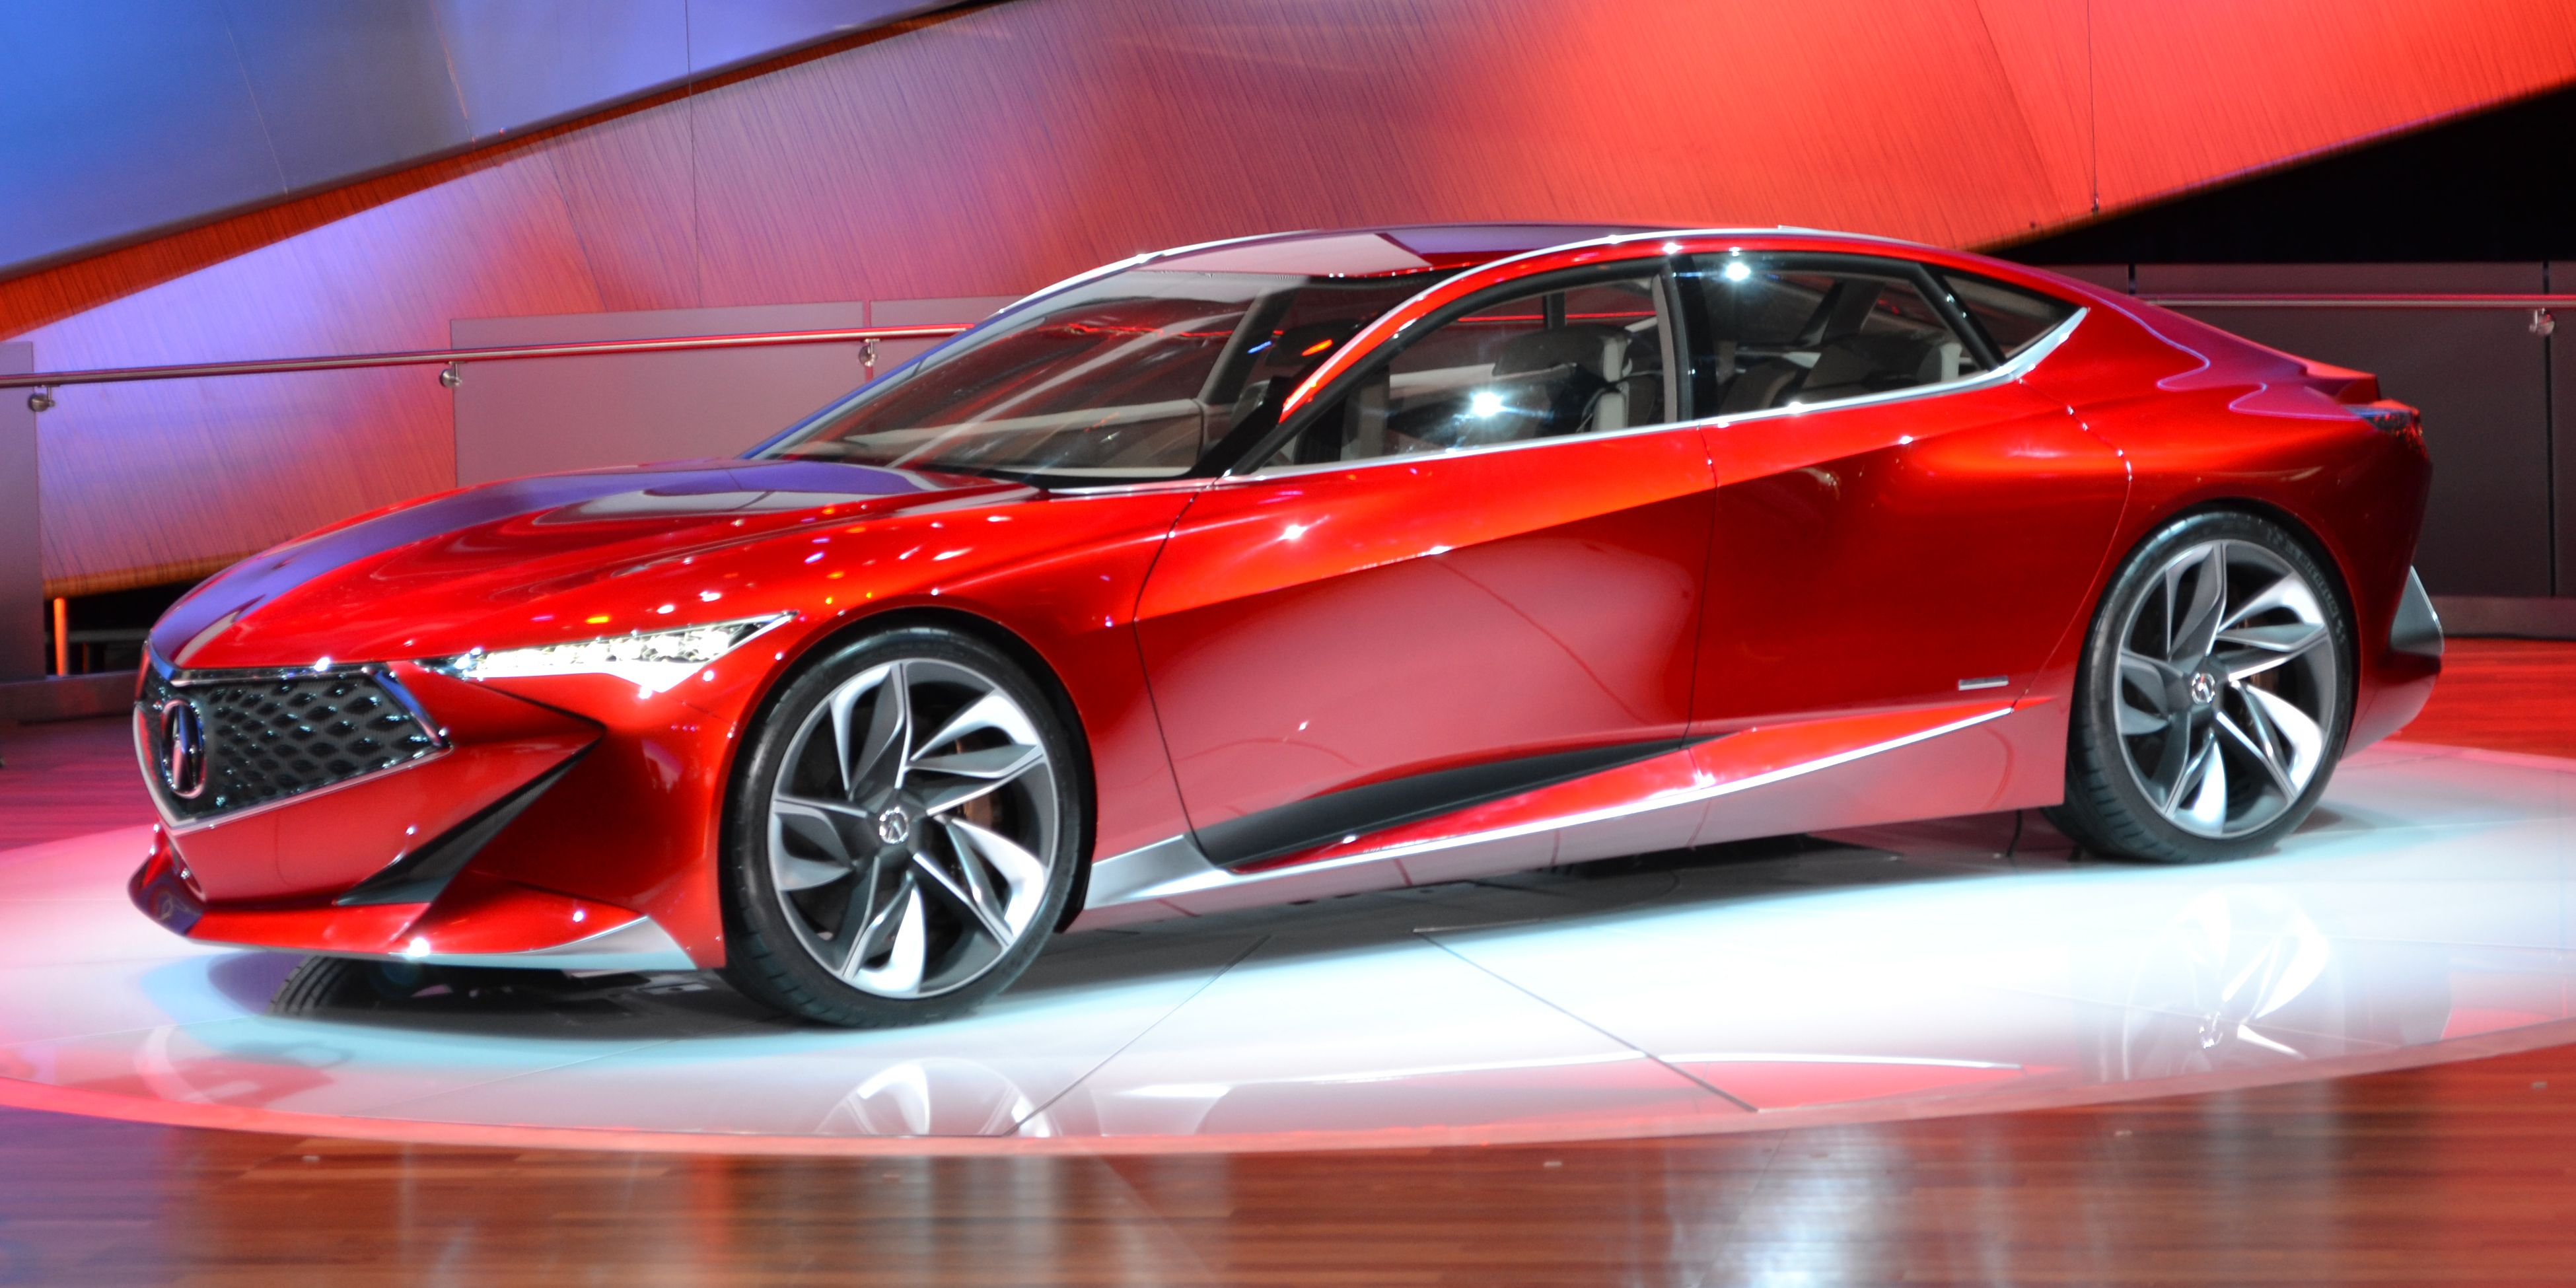 Worksheet. The Acura Precision Concept Is the Future of Acura